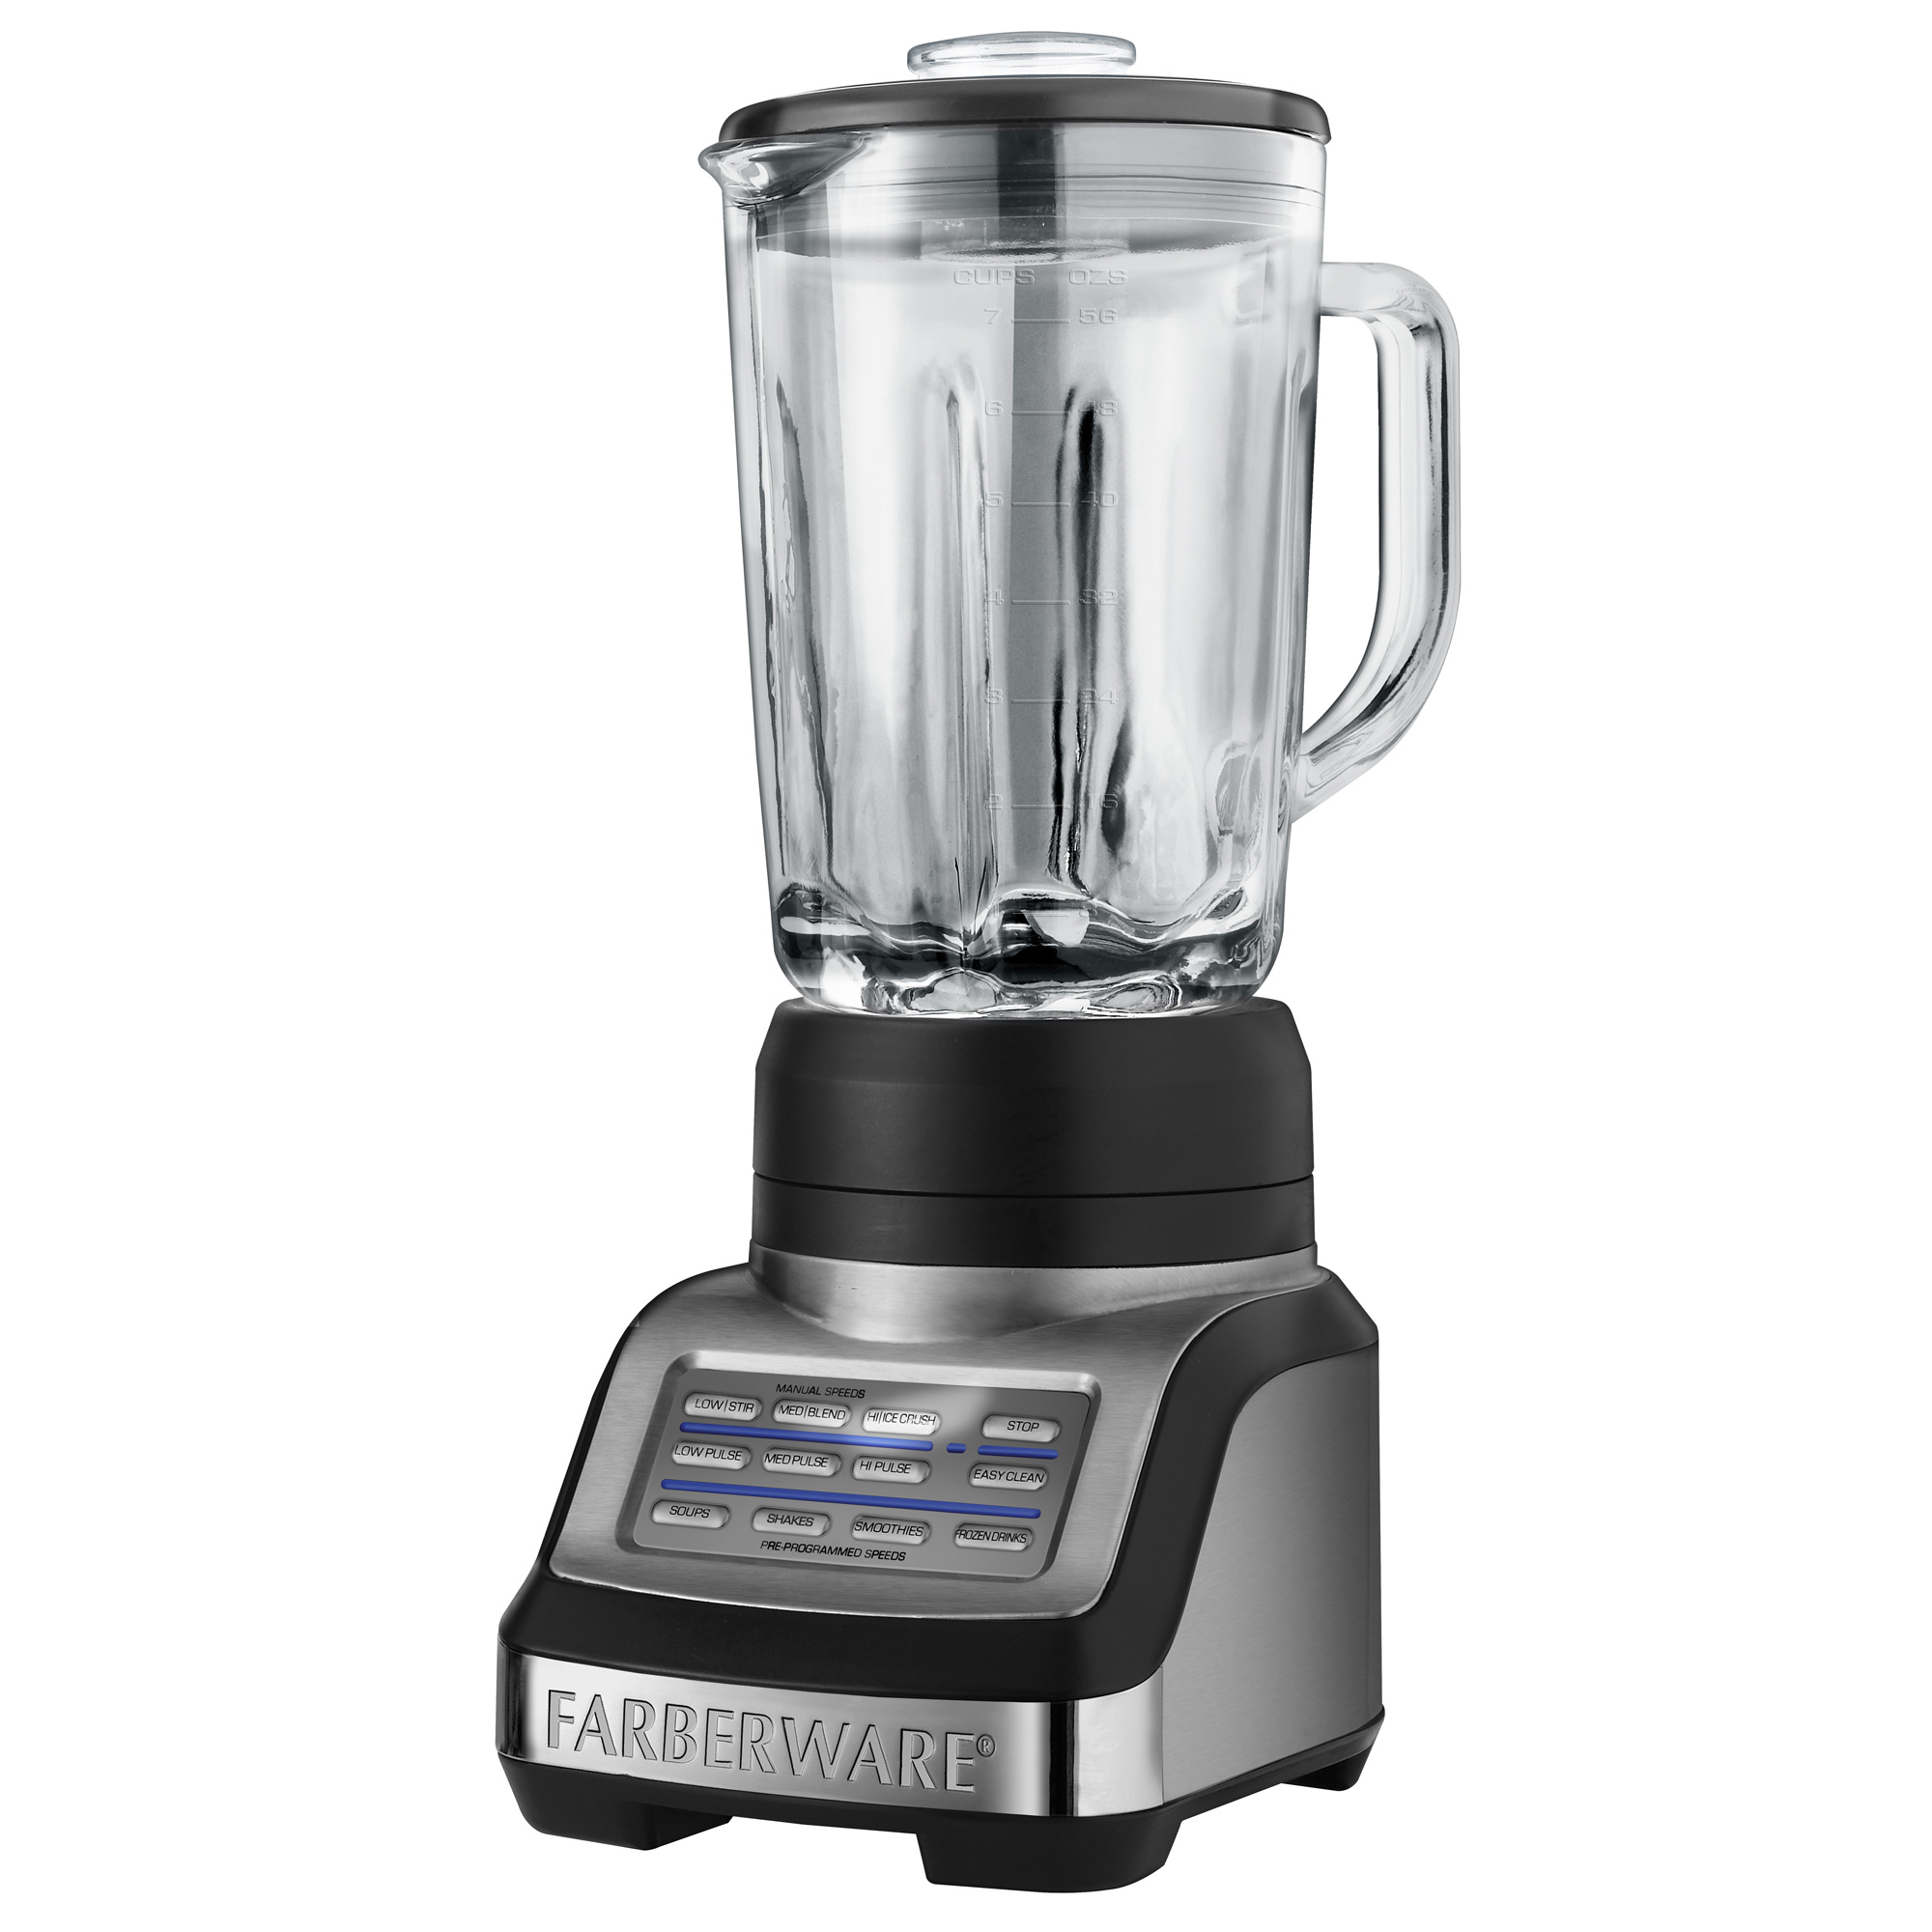 Farberware cooking classics for What brand of blender is used on the chew